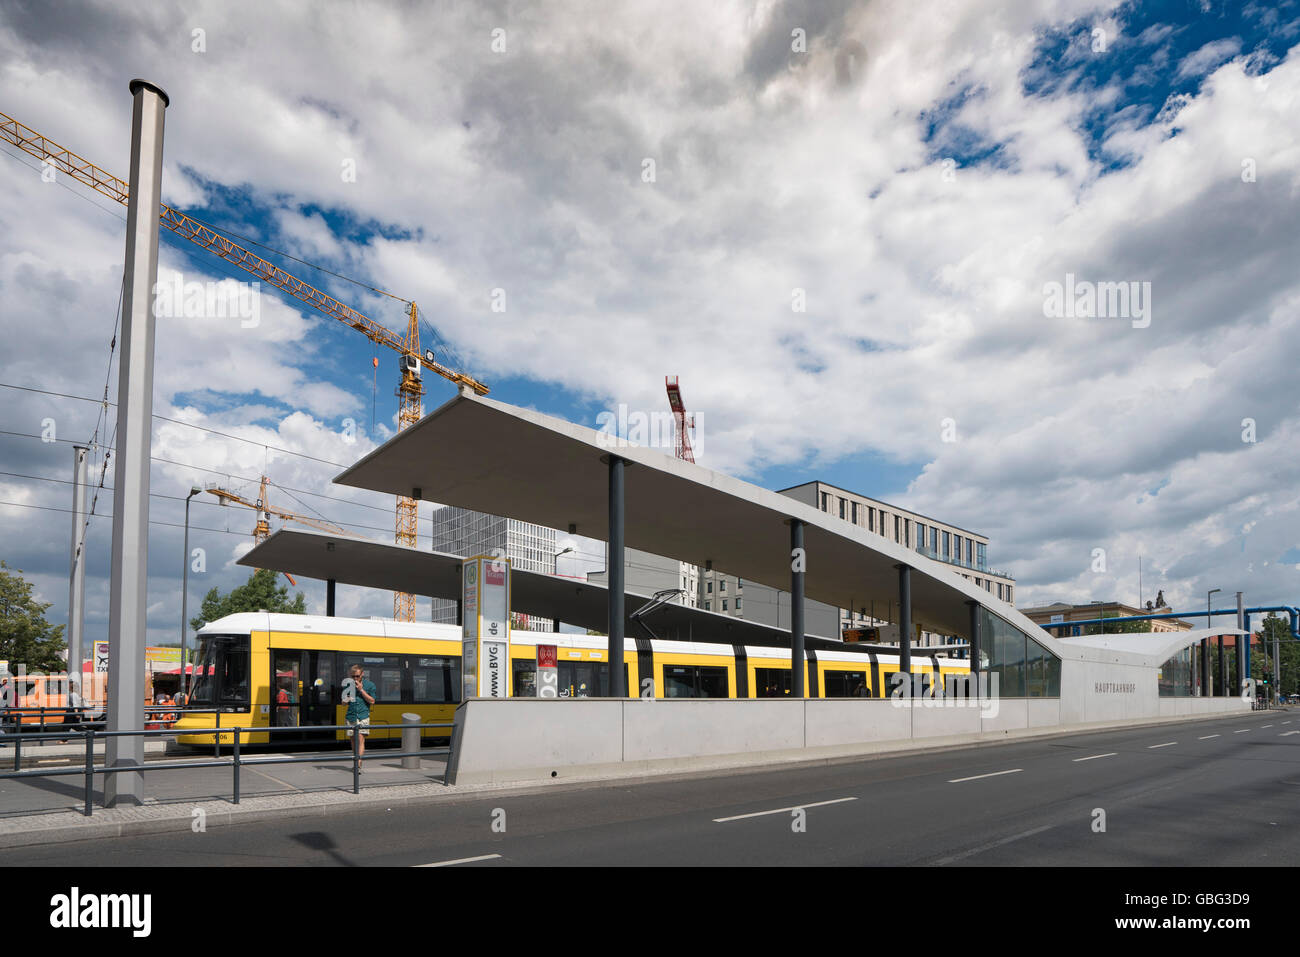 Modern new tram stop shelter at Hauptbahnhof , main railway station in Berlin Germany - Stock Image